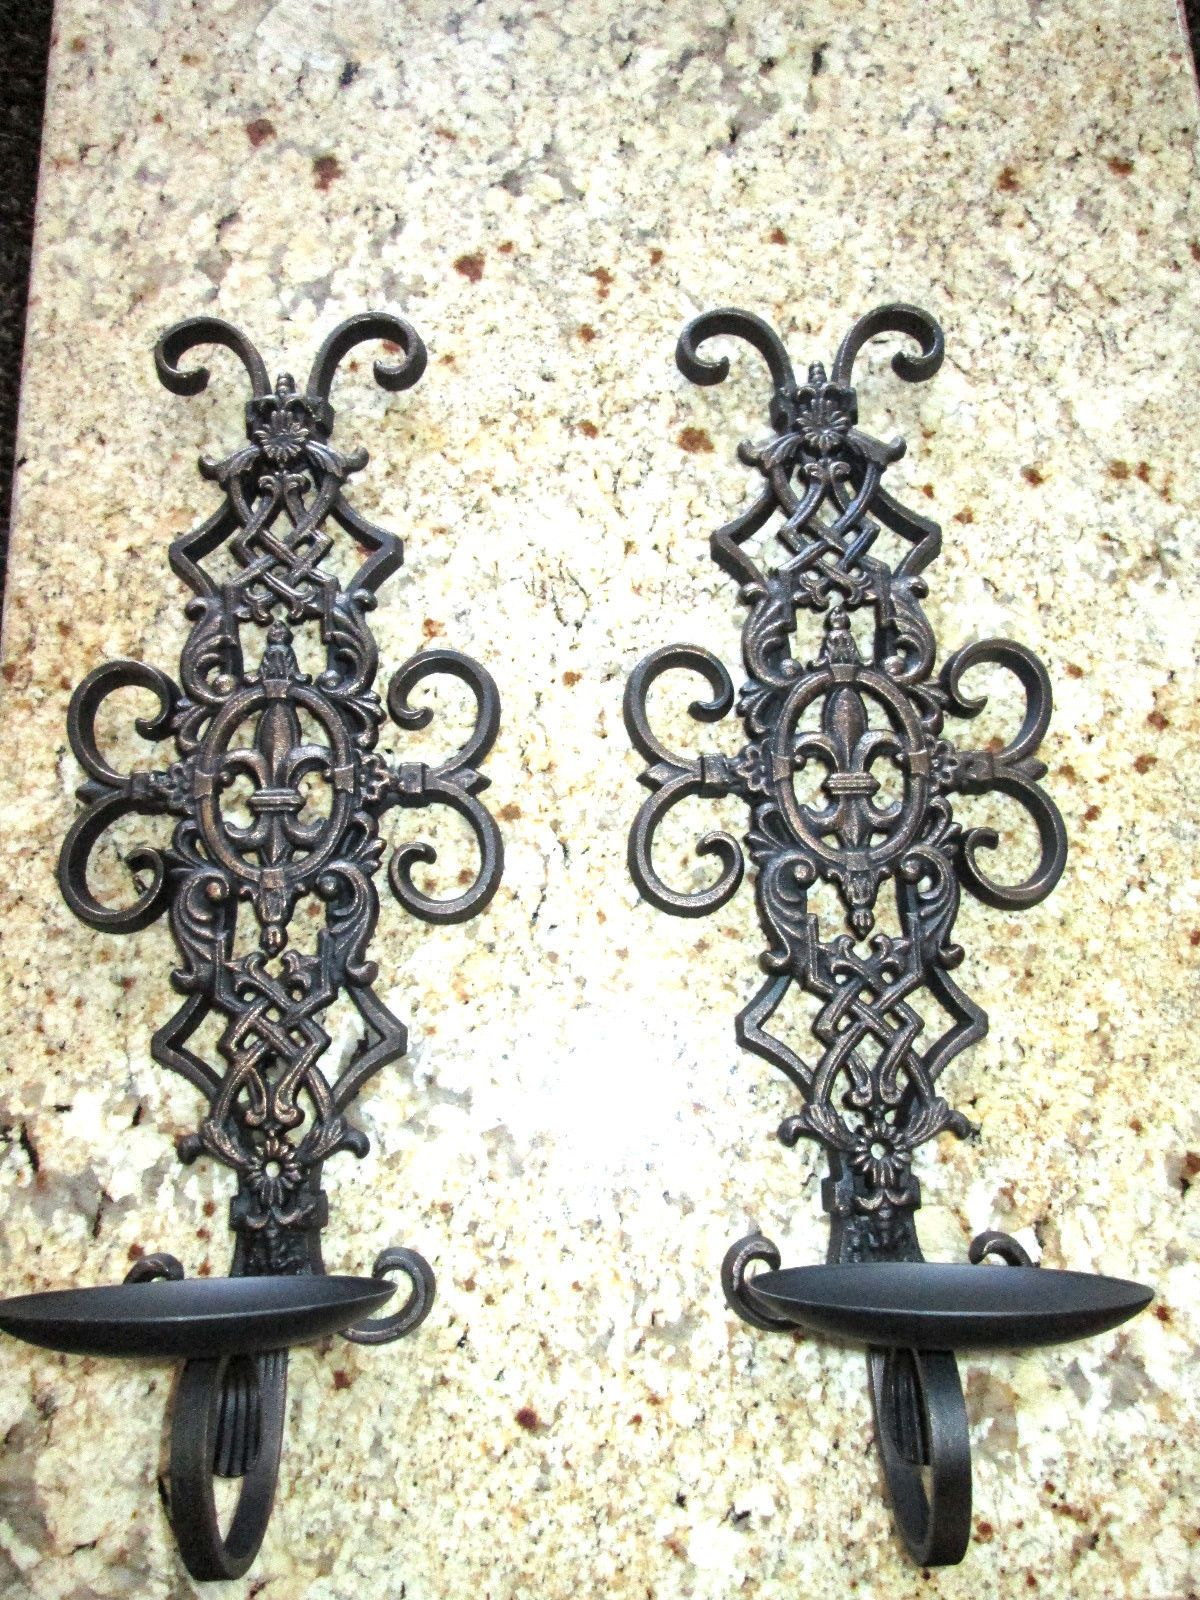 Spanish Iron Wall Sconces : Set of 2 Iron Wall Candle Holders / Sconces with Fleur de Lis. Old World, French Country ...